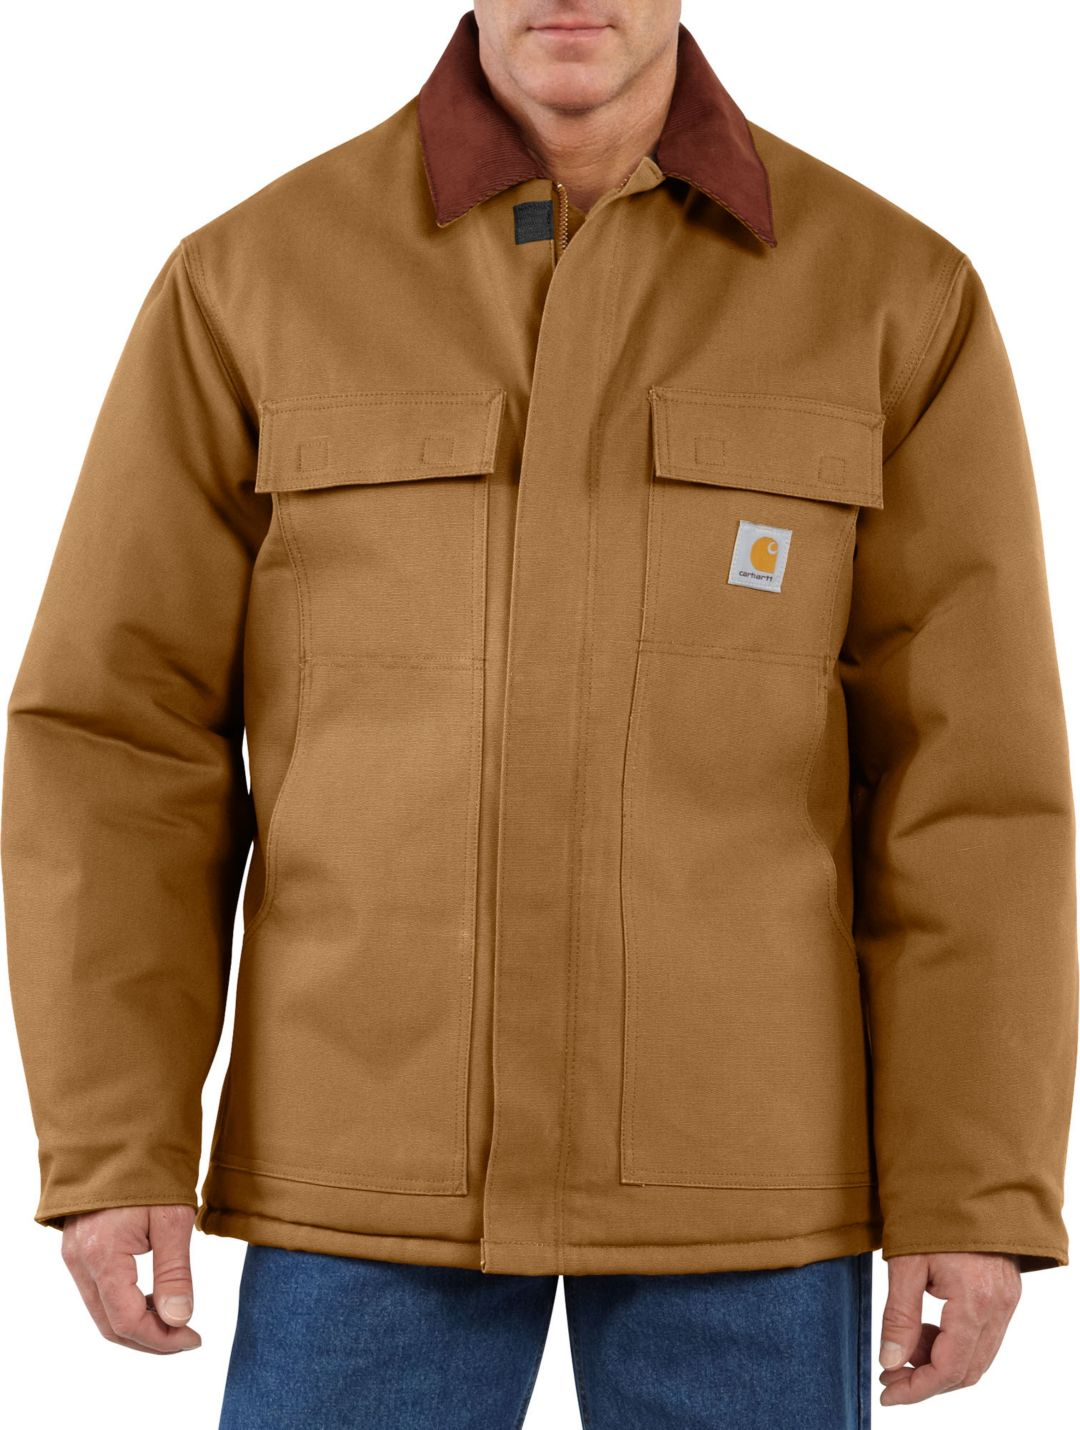 Carhartt Full Swing Sherpa Lined Armstrong Jacket ...